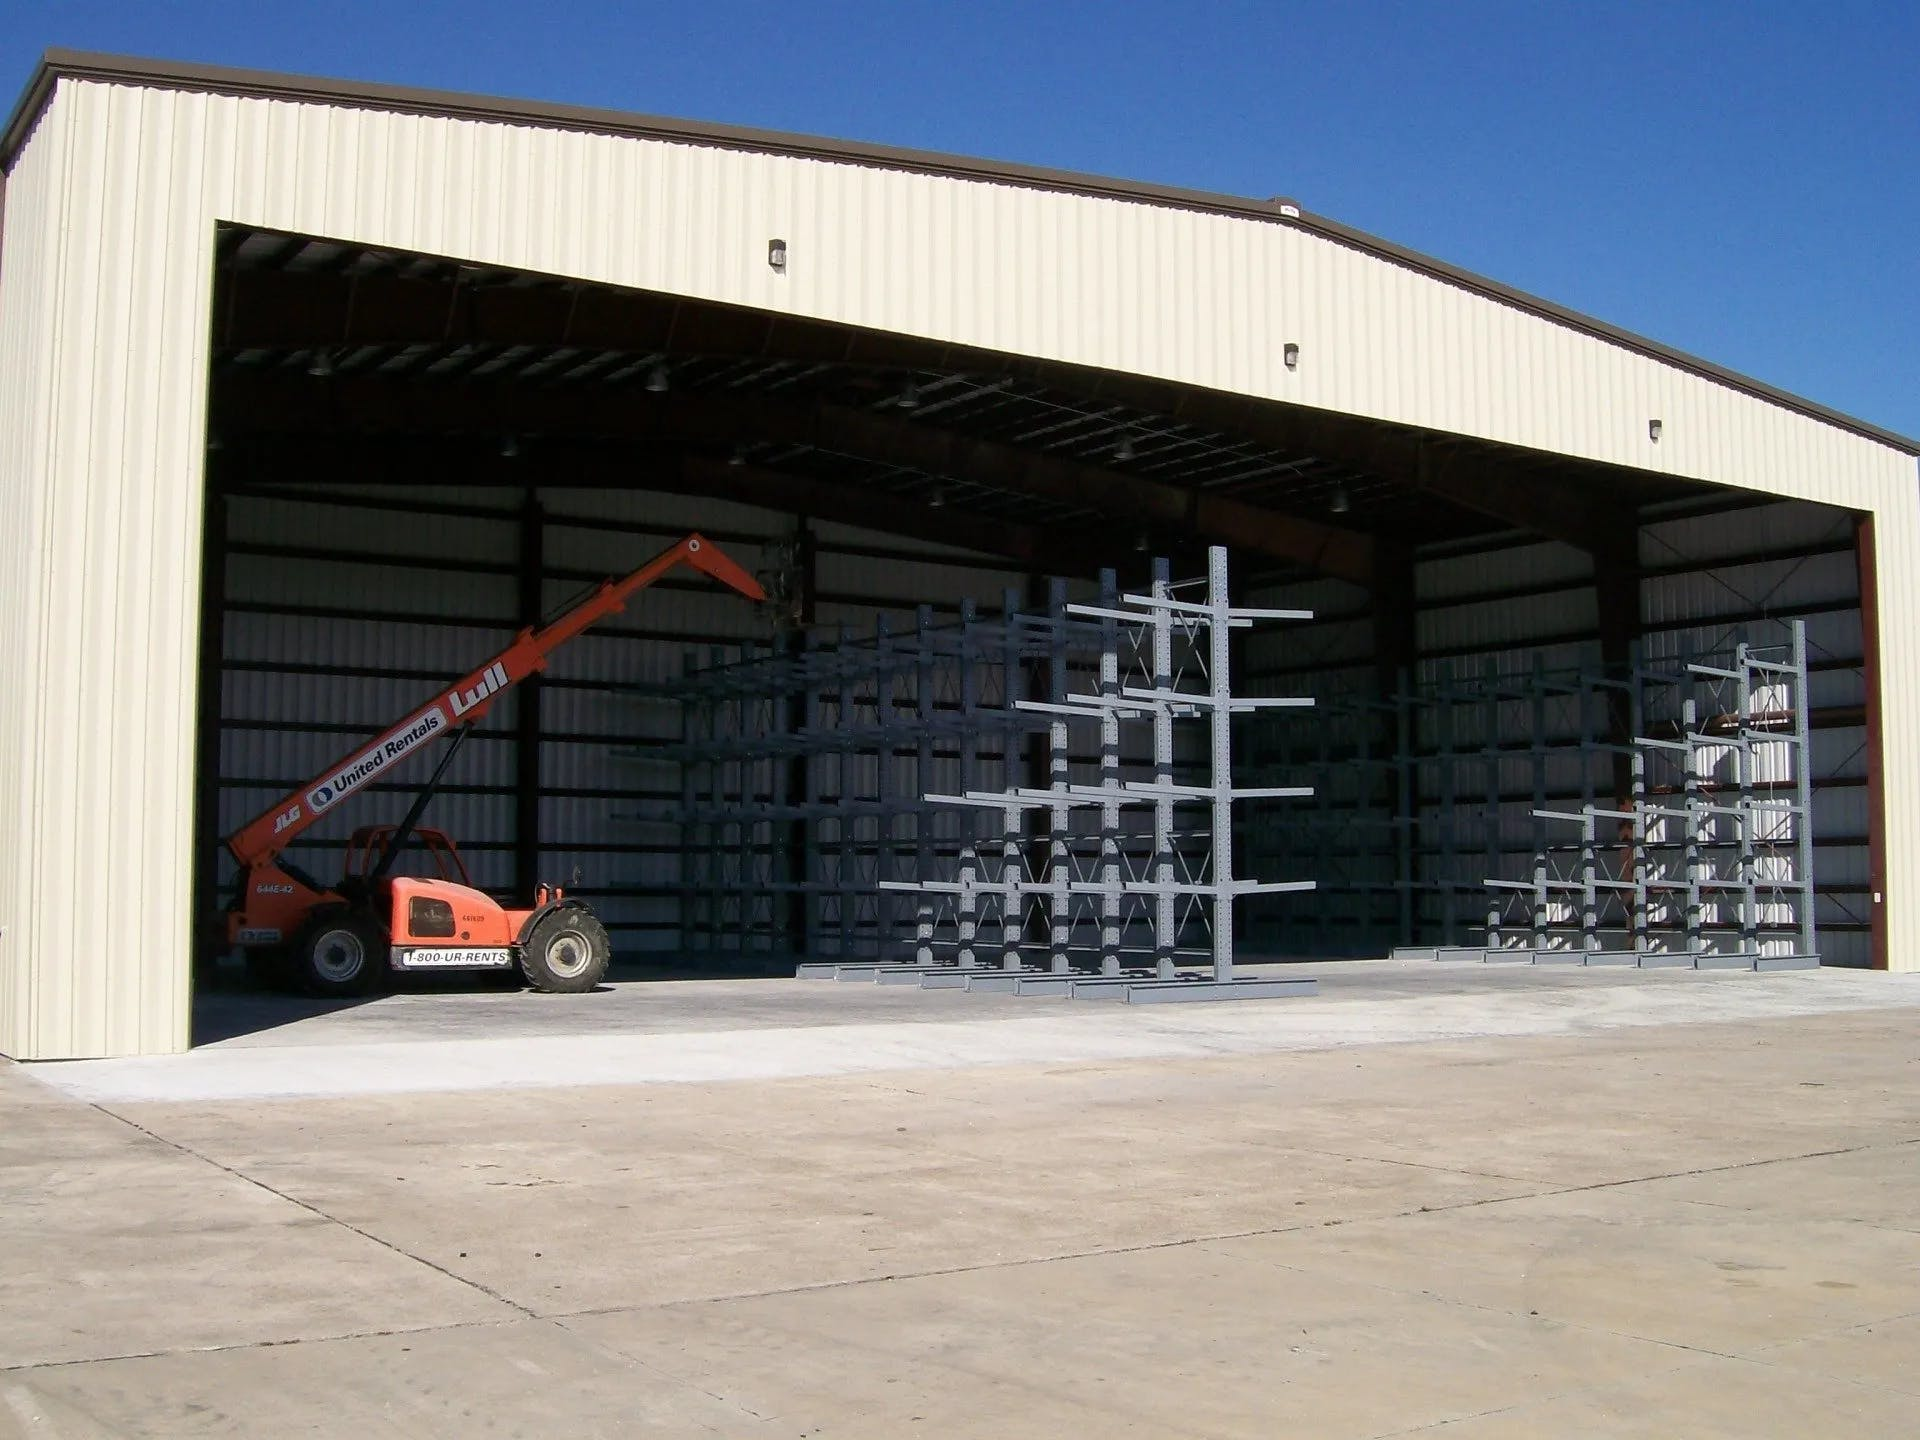 Stewart Group Enterprises with a crane in a warehouse